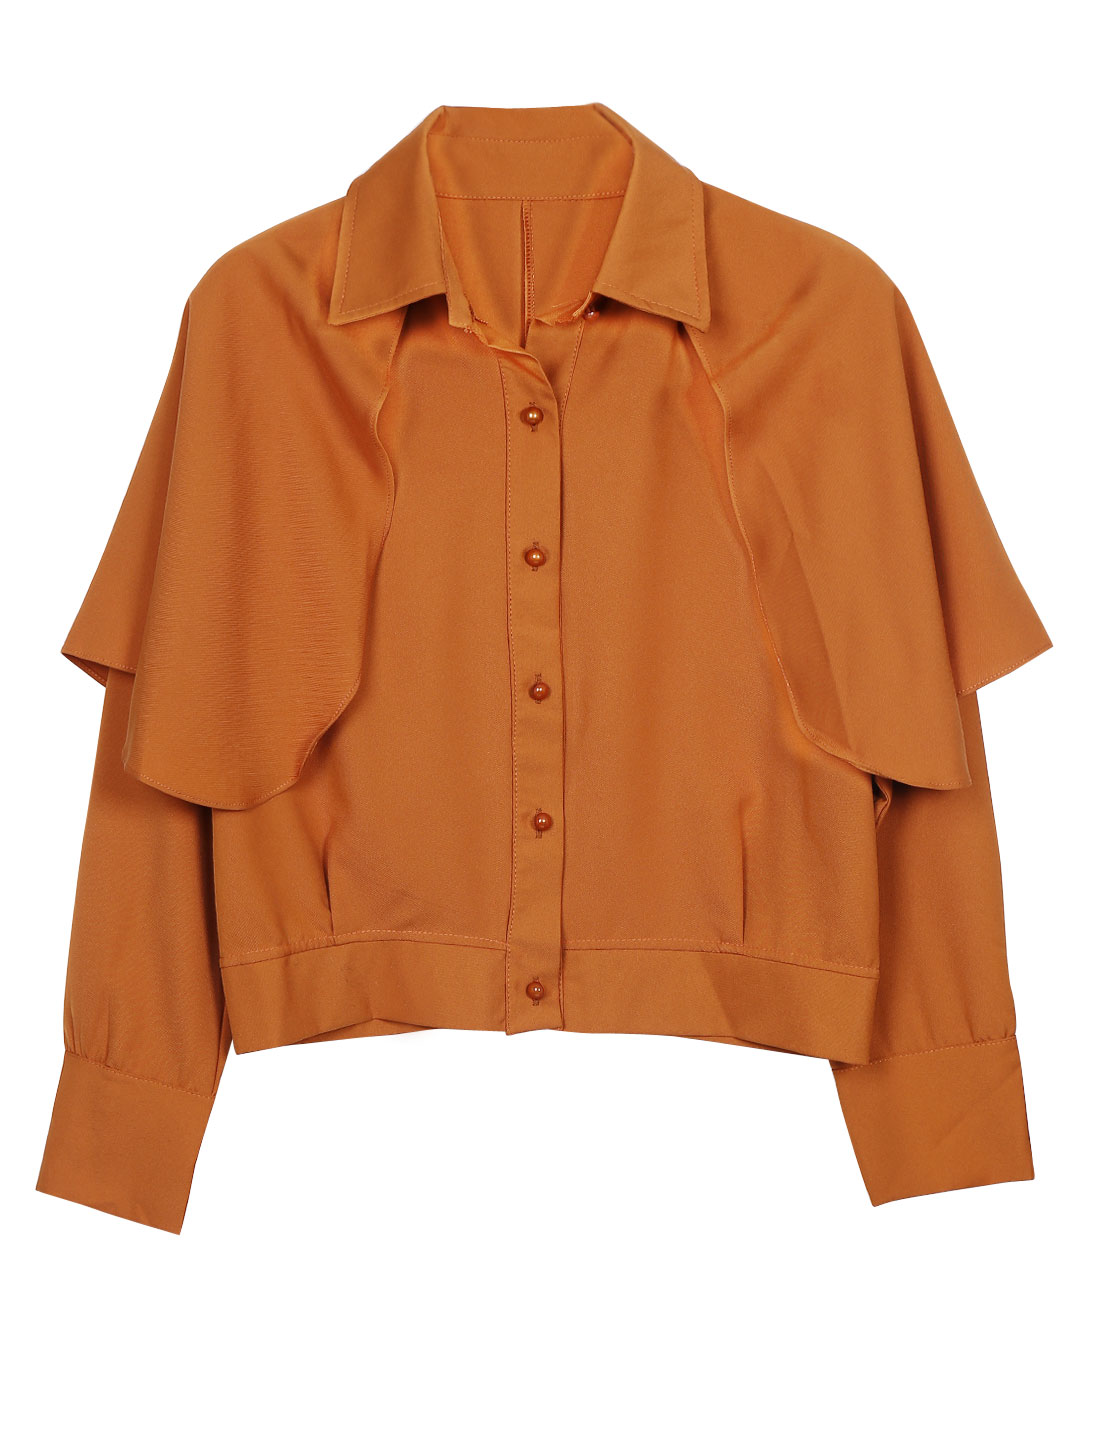 Women Fashion Buttoned Cuffs Cape Design Cropped Shirt Ochre XS